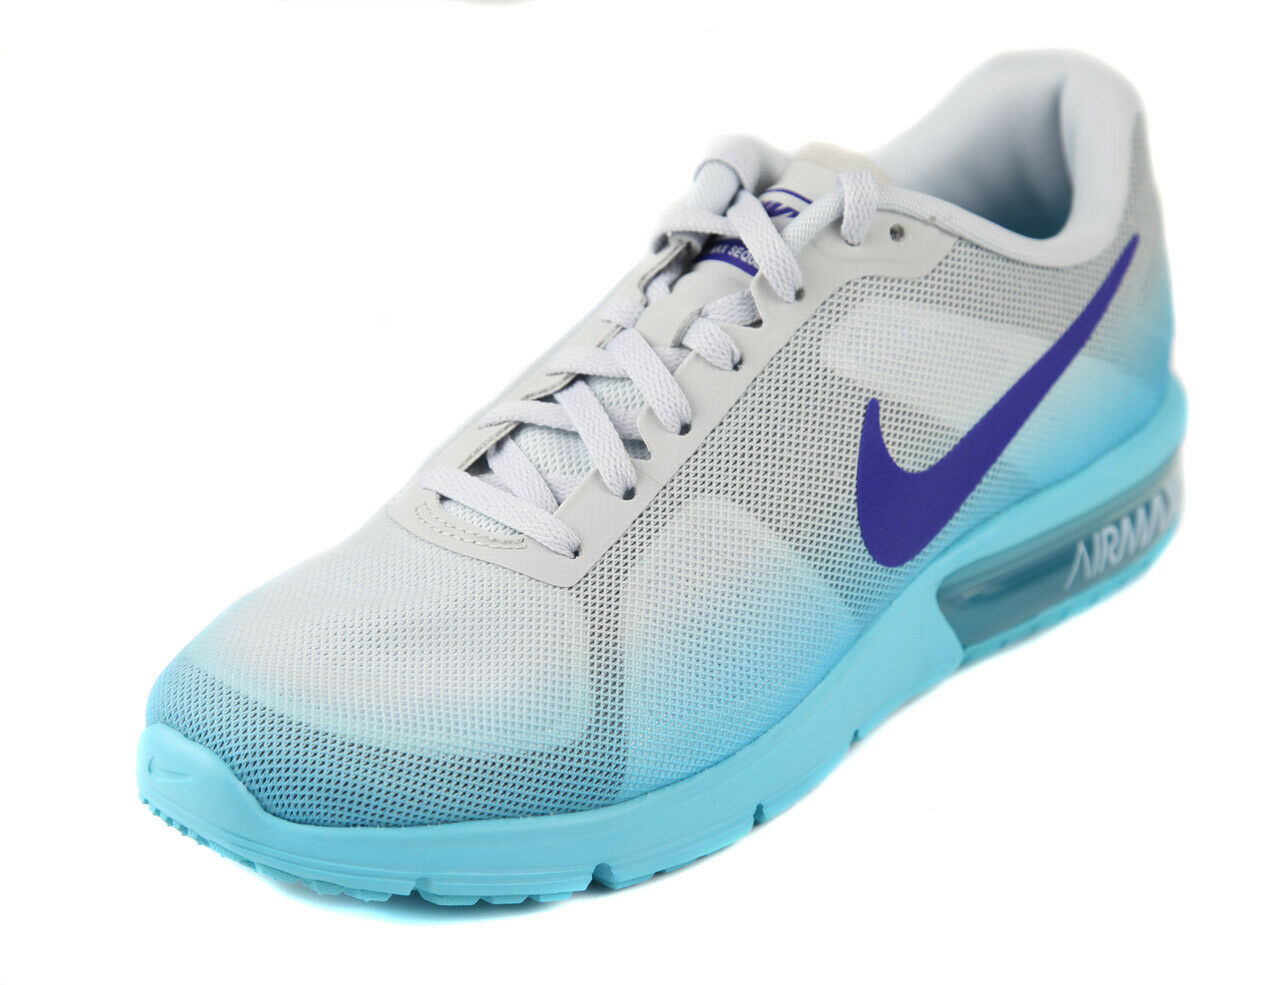 Nike mujer air max blancoo azul sequent zapatos ret new